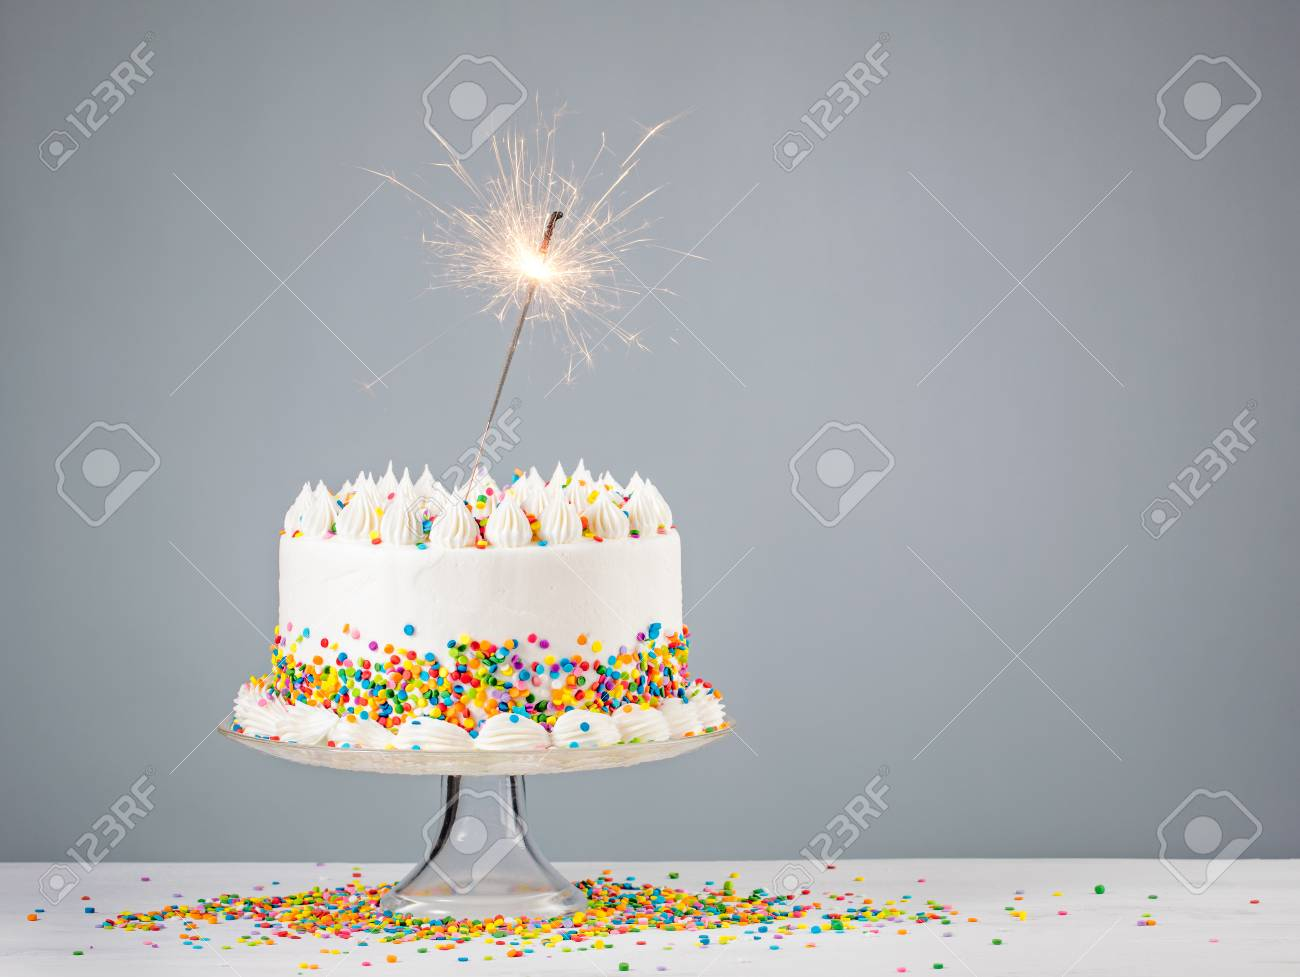 Phenomenal White Birthday Cake With Colorful Sprinkles And Sparkler Over Funny Birthday Cards Online Alyptdamsfinfo